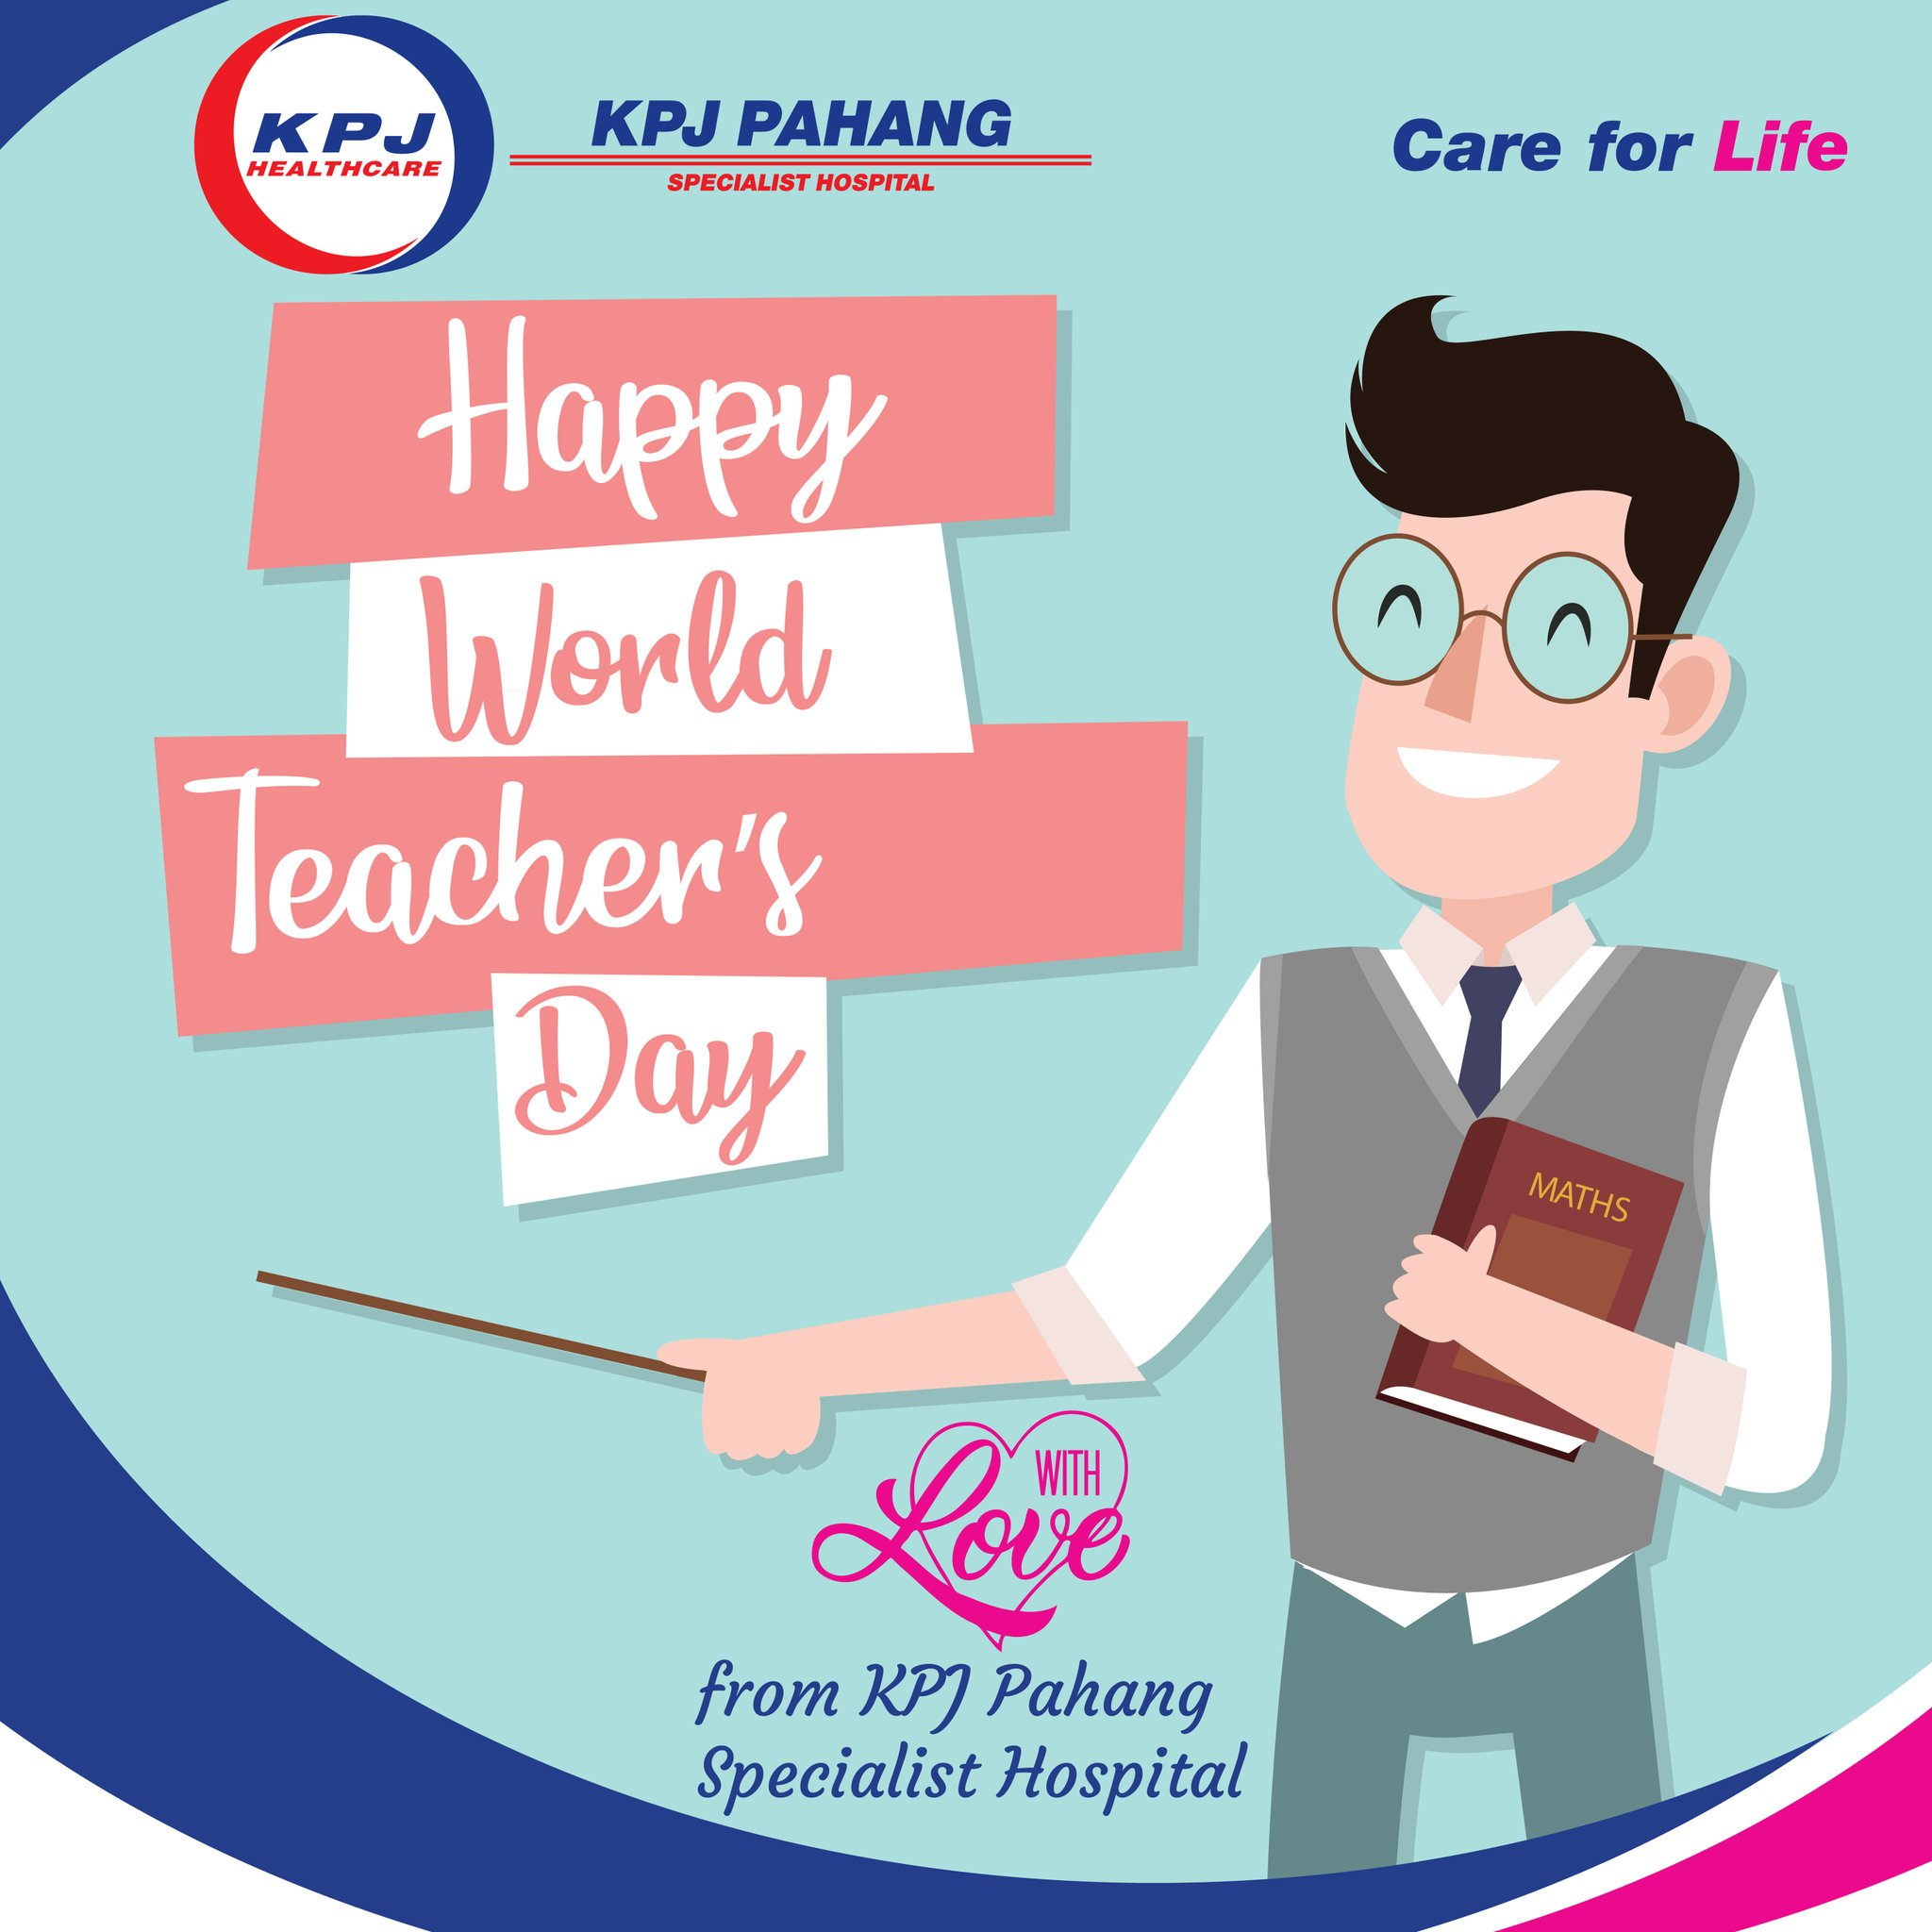 Kpj Pahang On Twitter Happy Teacher S Day To All Teacher In The World With Love Kpj Pahang Specialist Hospital